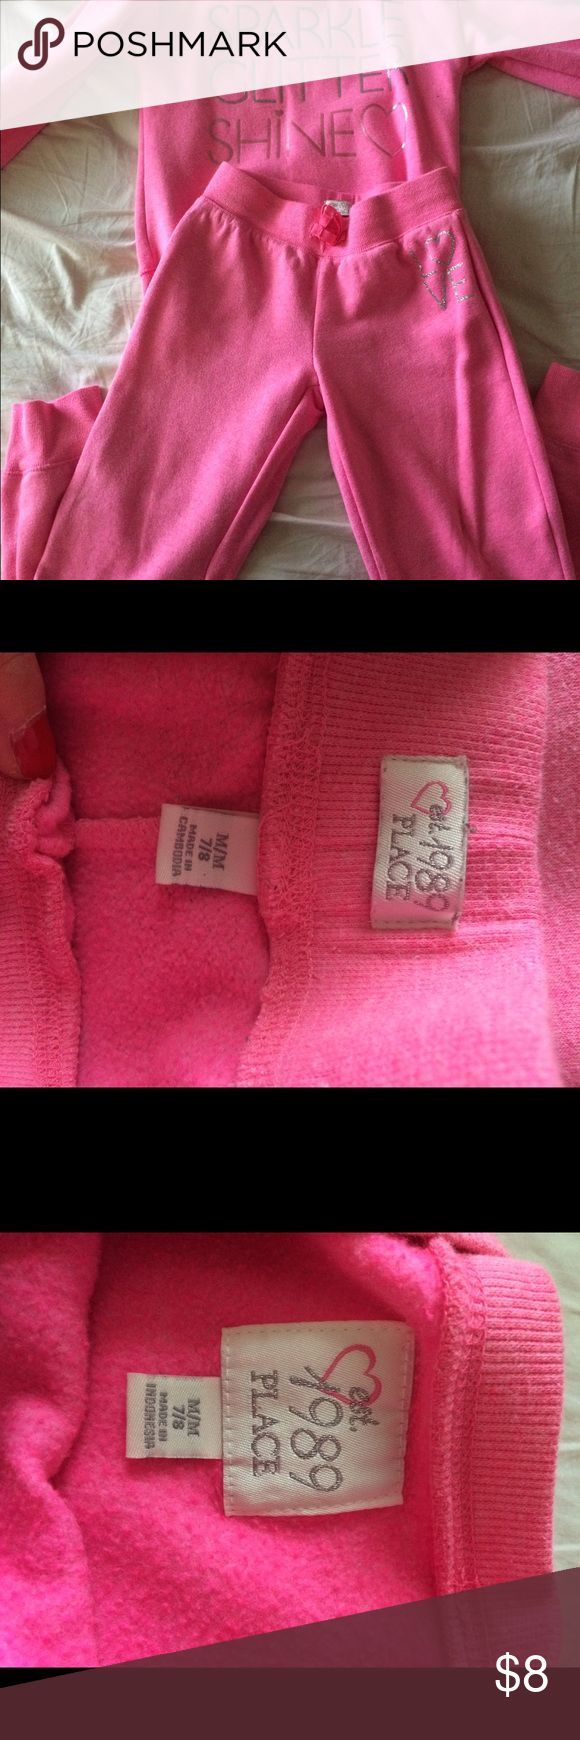 Pink jogging outfit kids Children's place girls pink jogging suit gently used no tears rips or stains Children's Place Matching Sets